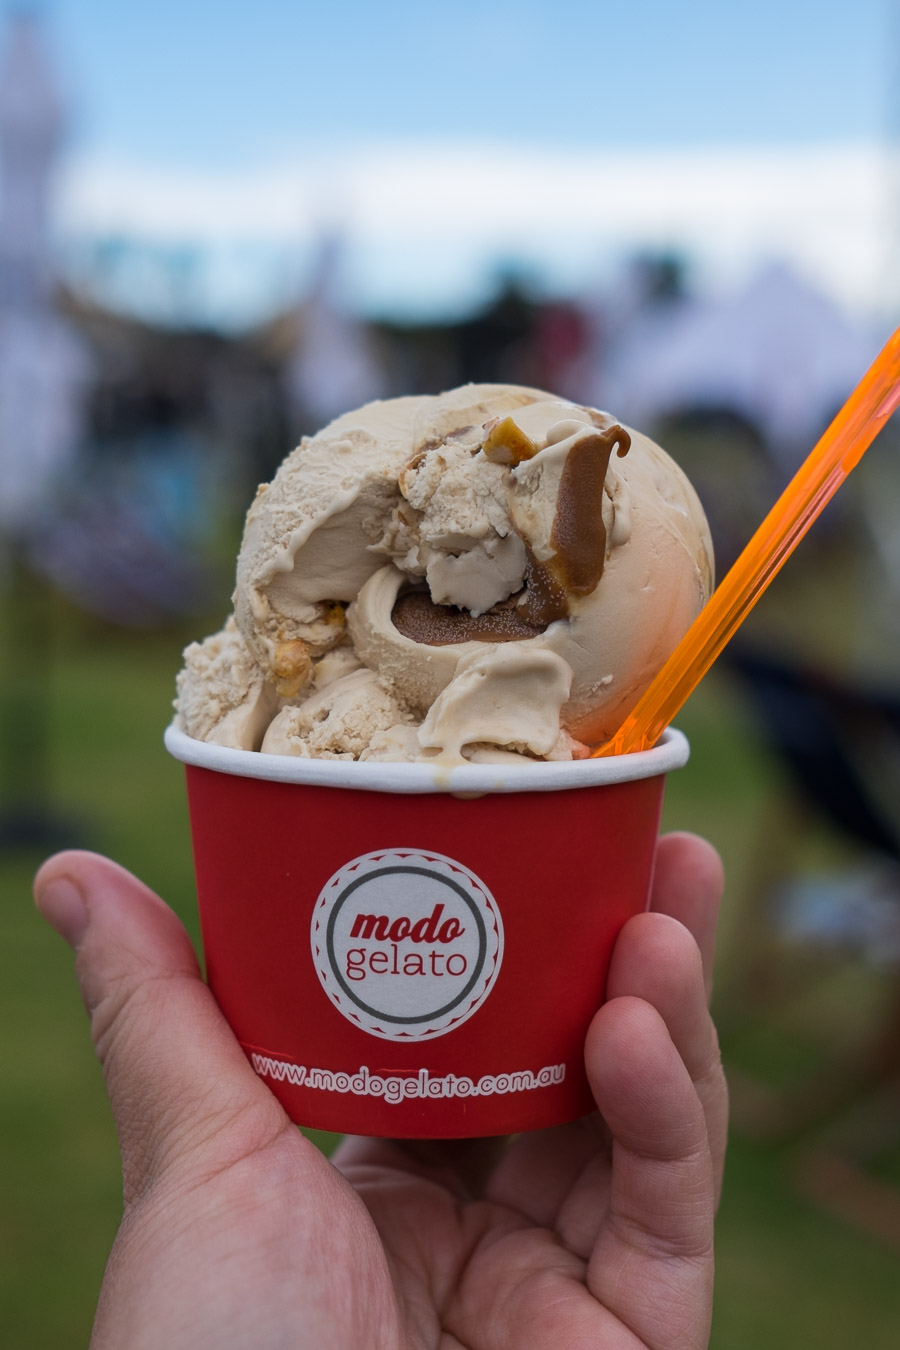 Modo Gelato: Salted Caramel with Honeycomb (6 crowns for 2 scoops).